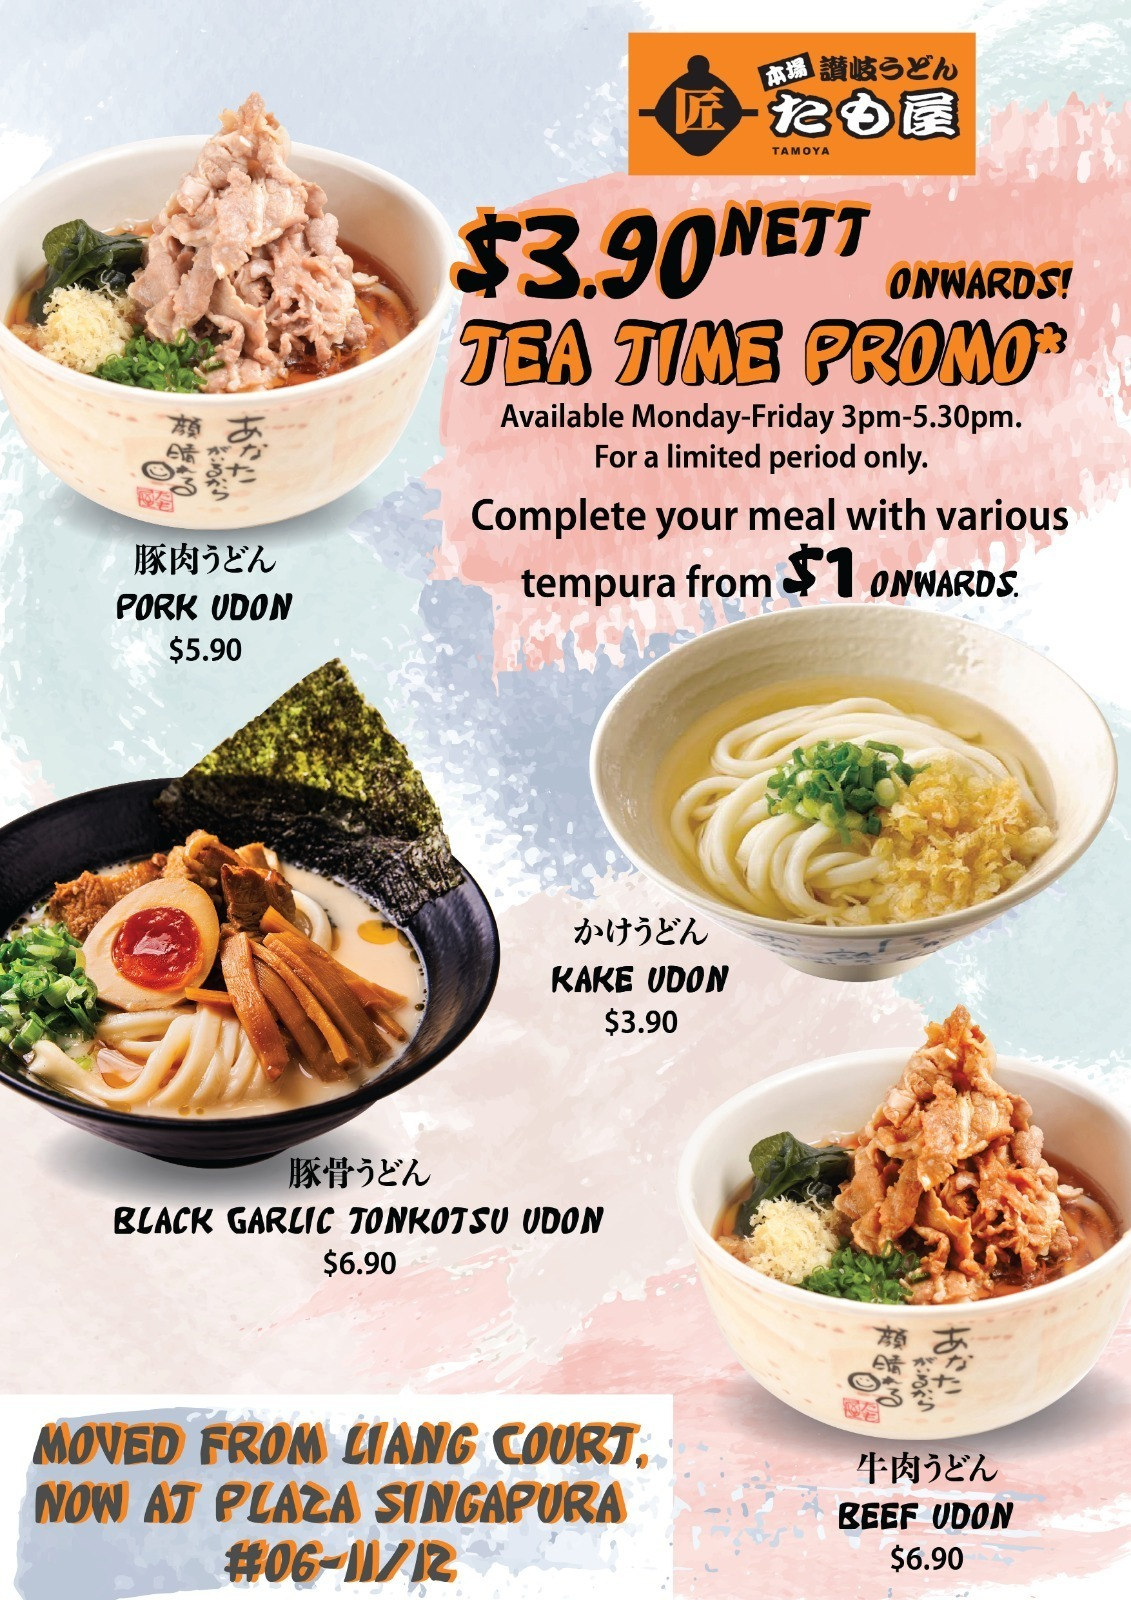 Tea Time Promo $3.90 Udon at Tamoya Udon, Plaza Singapura | Why Not Deals 1 & Promotions